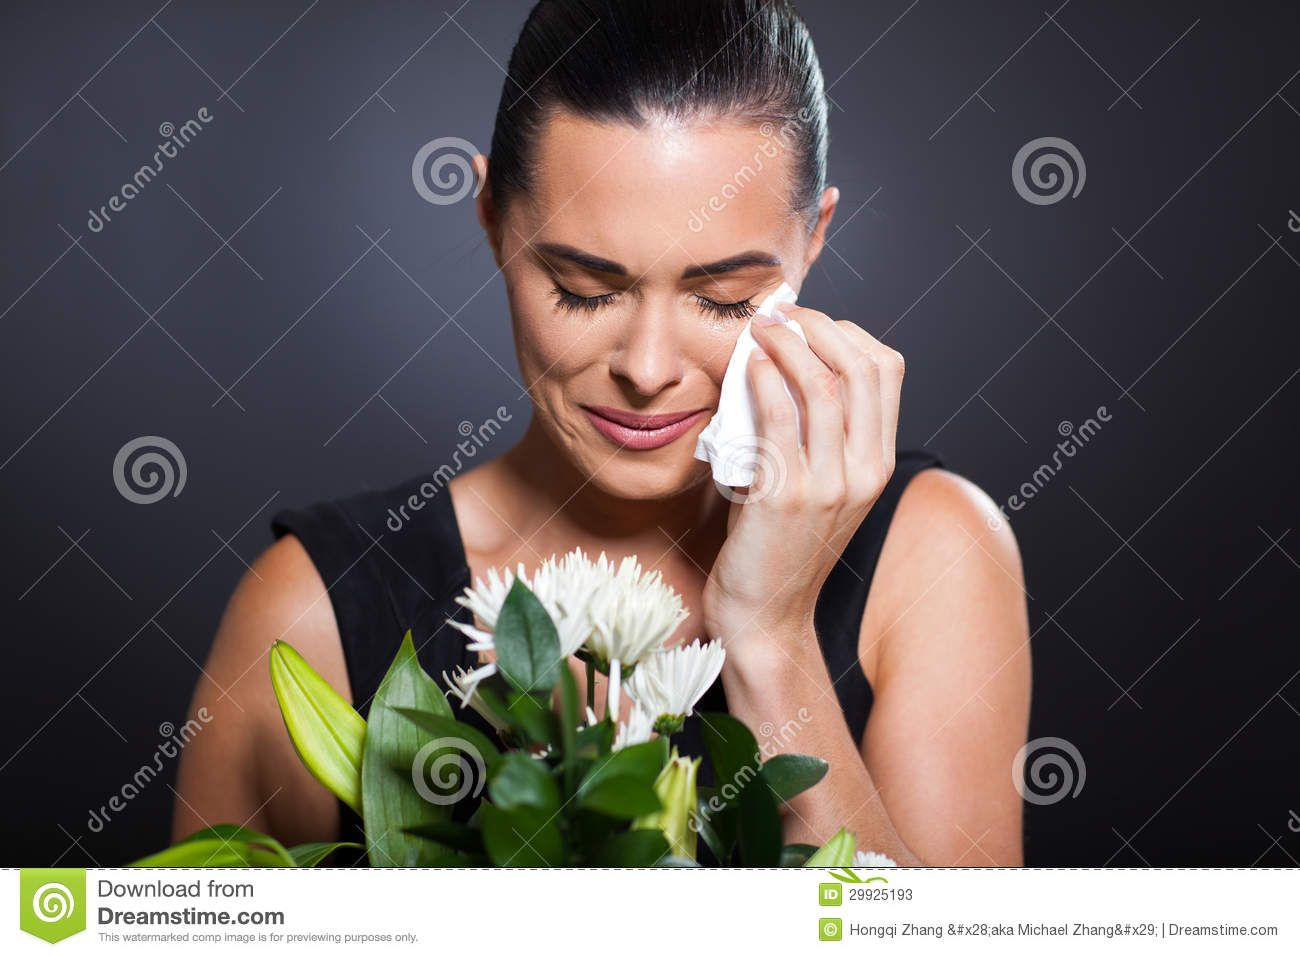 People Crying at a Funeral Stock Photos Crying woman